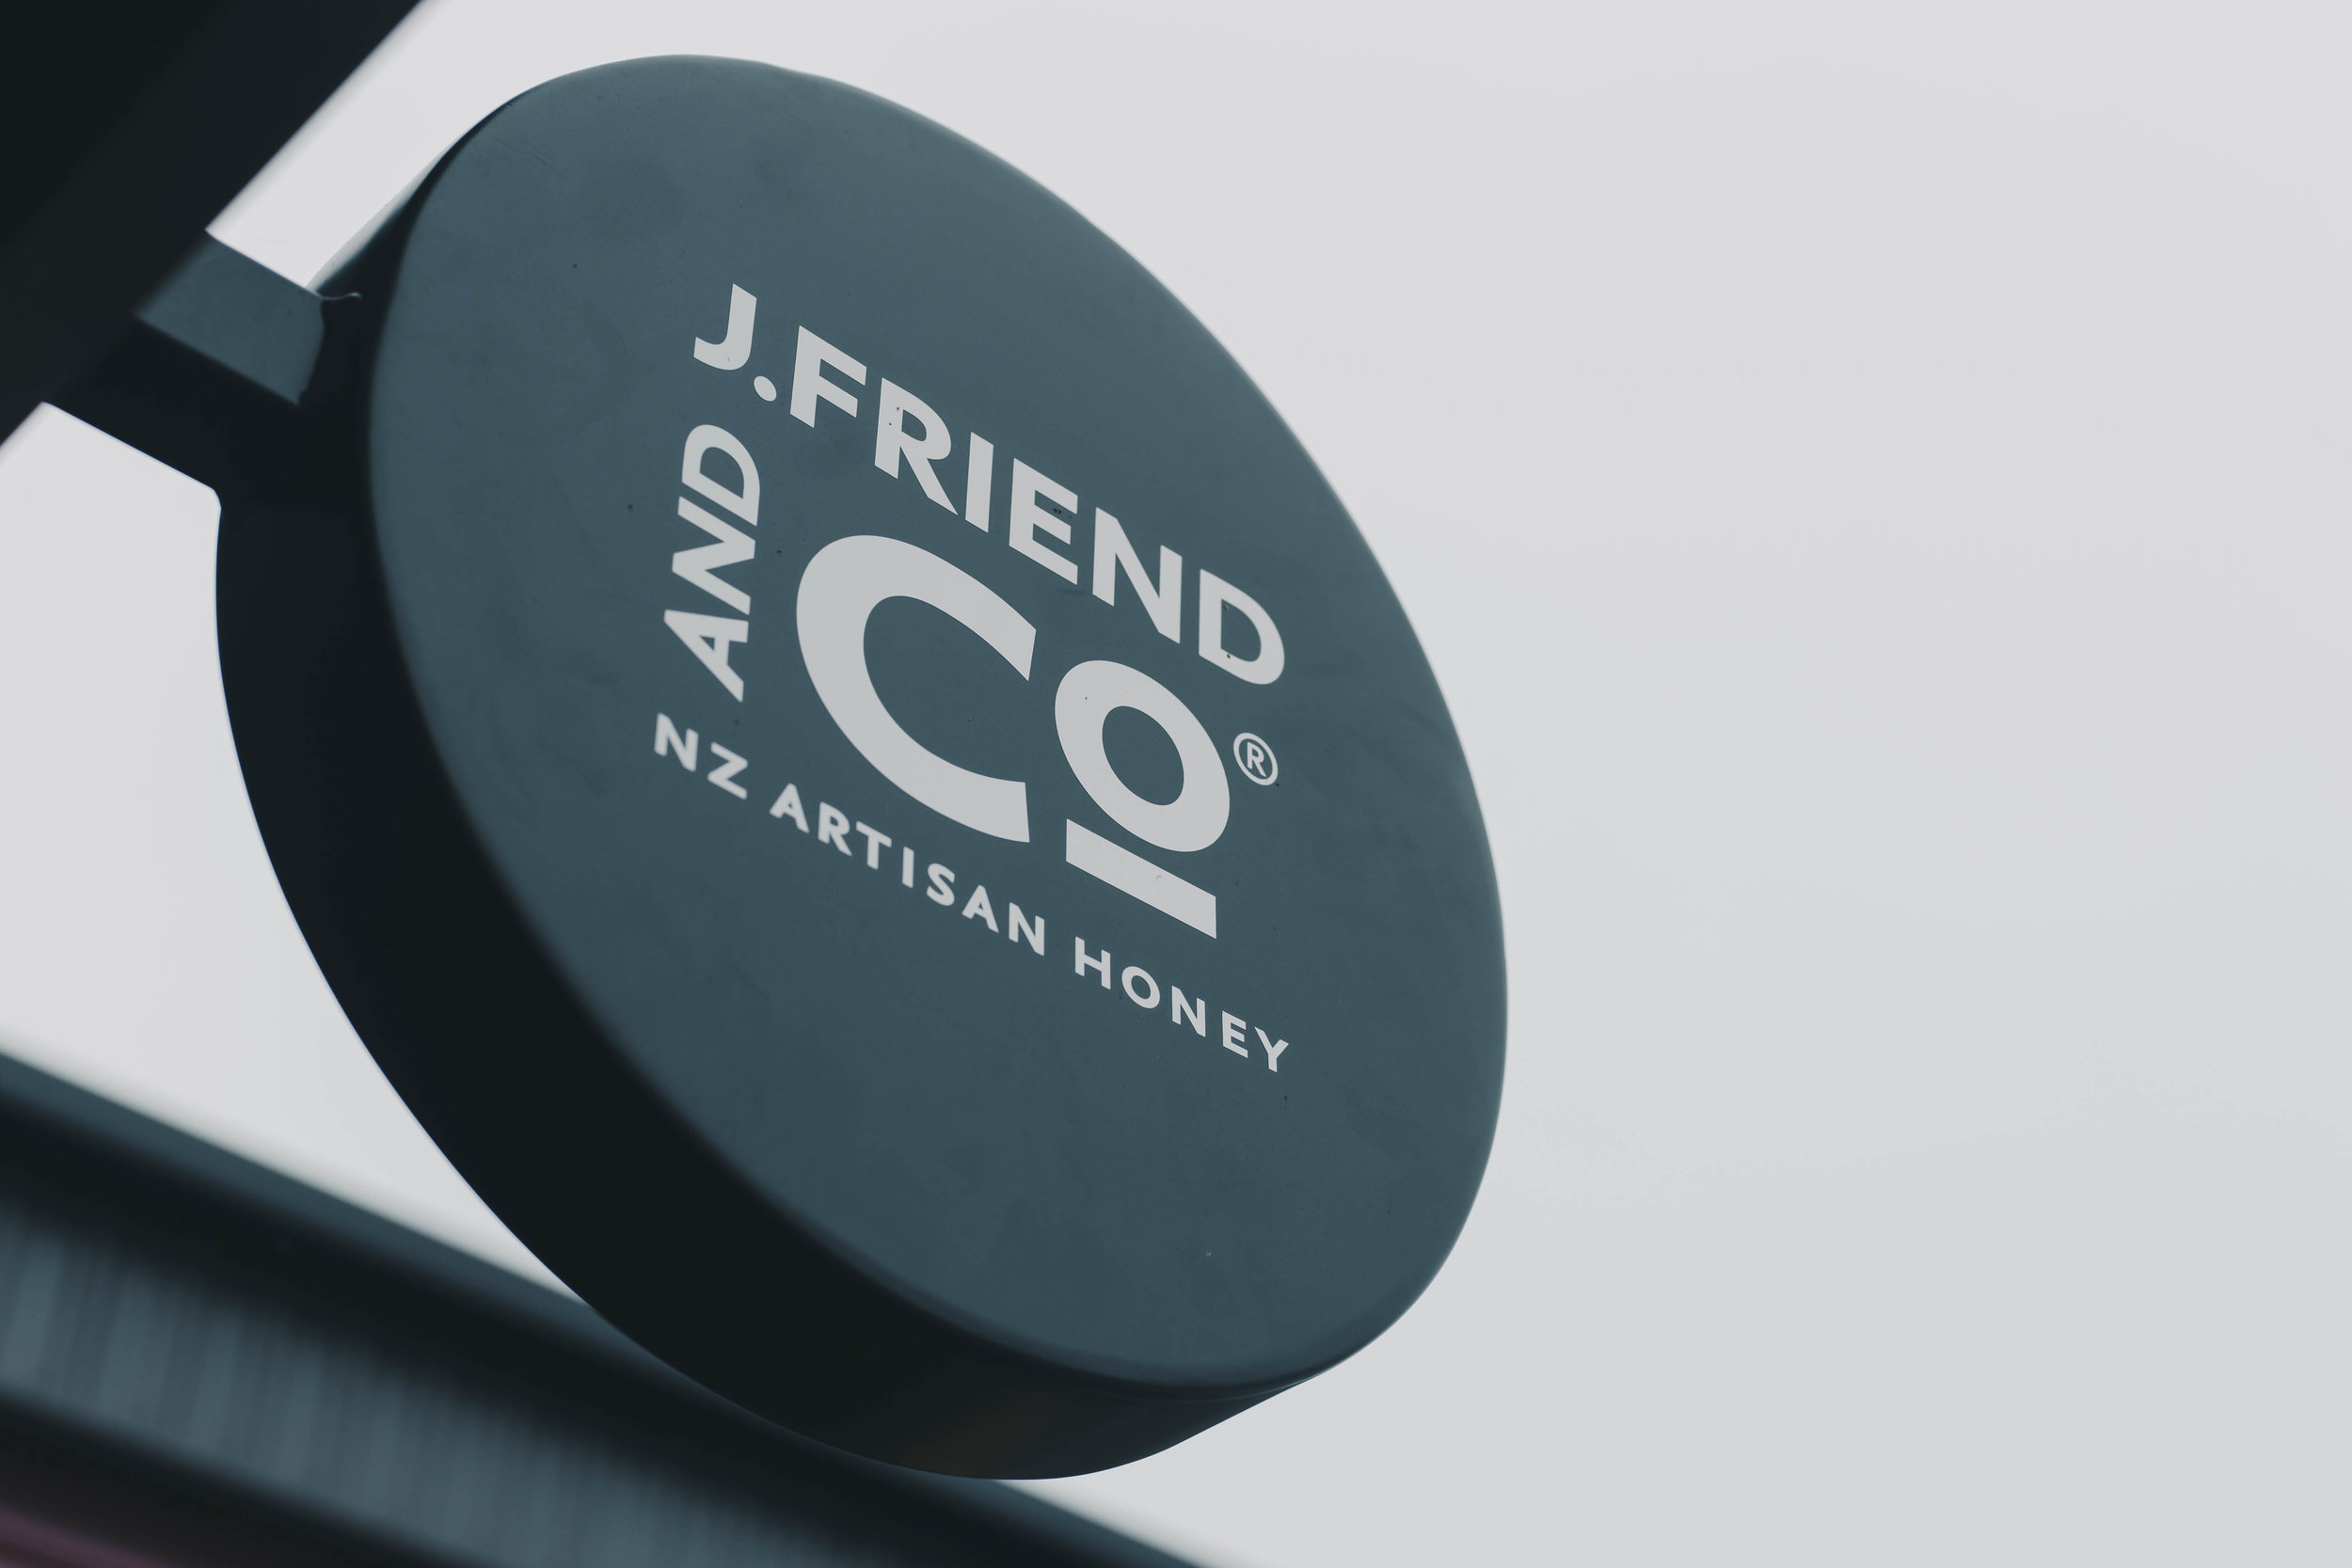 J Friend and Co logo